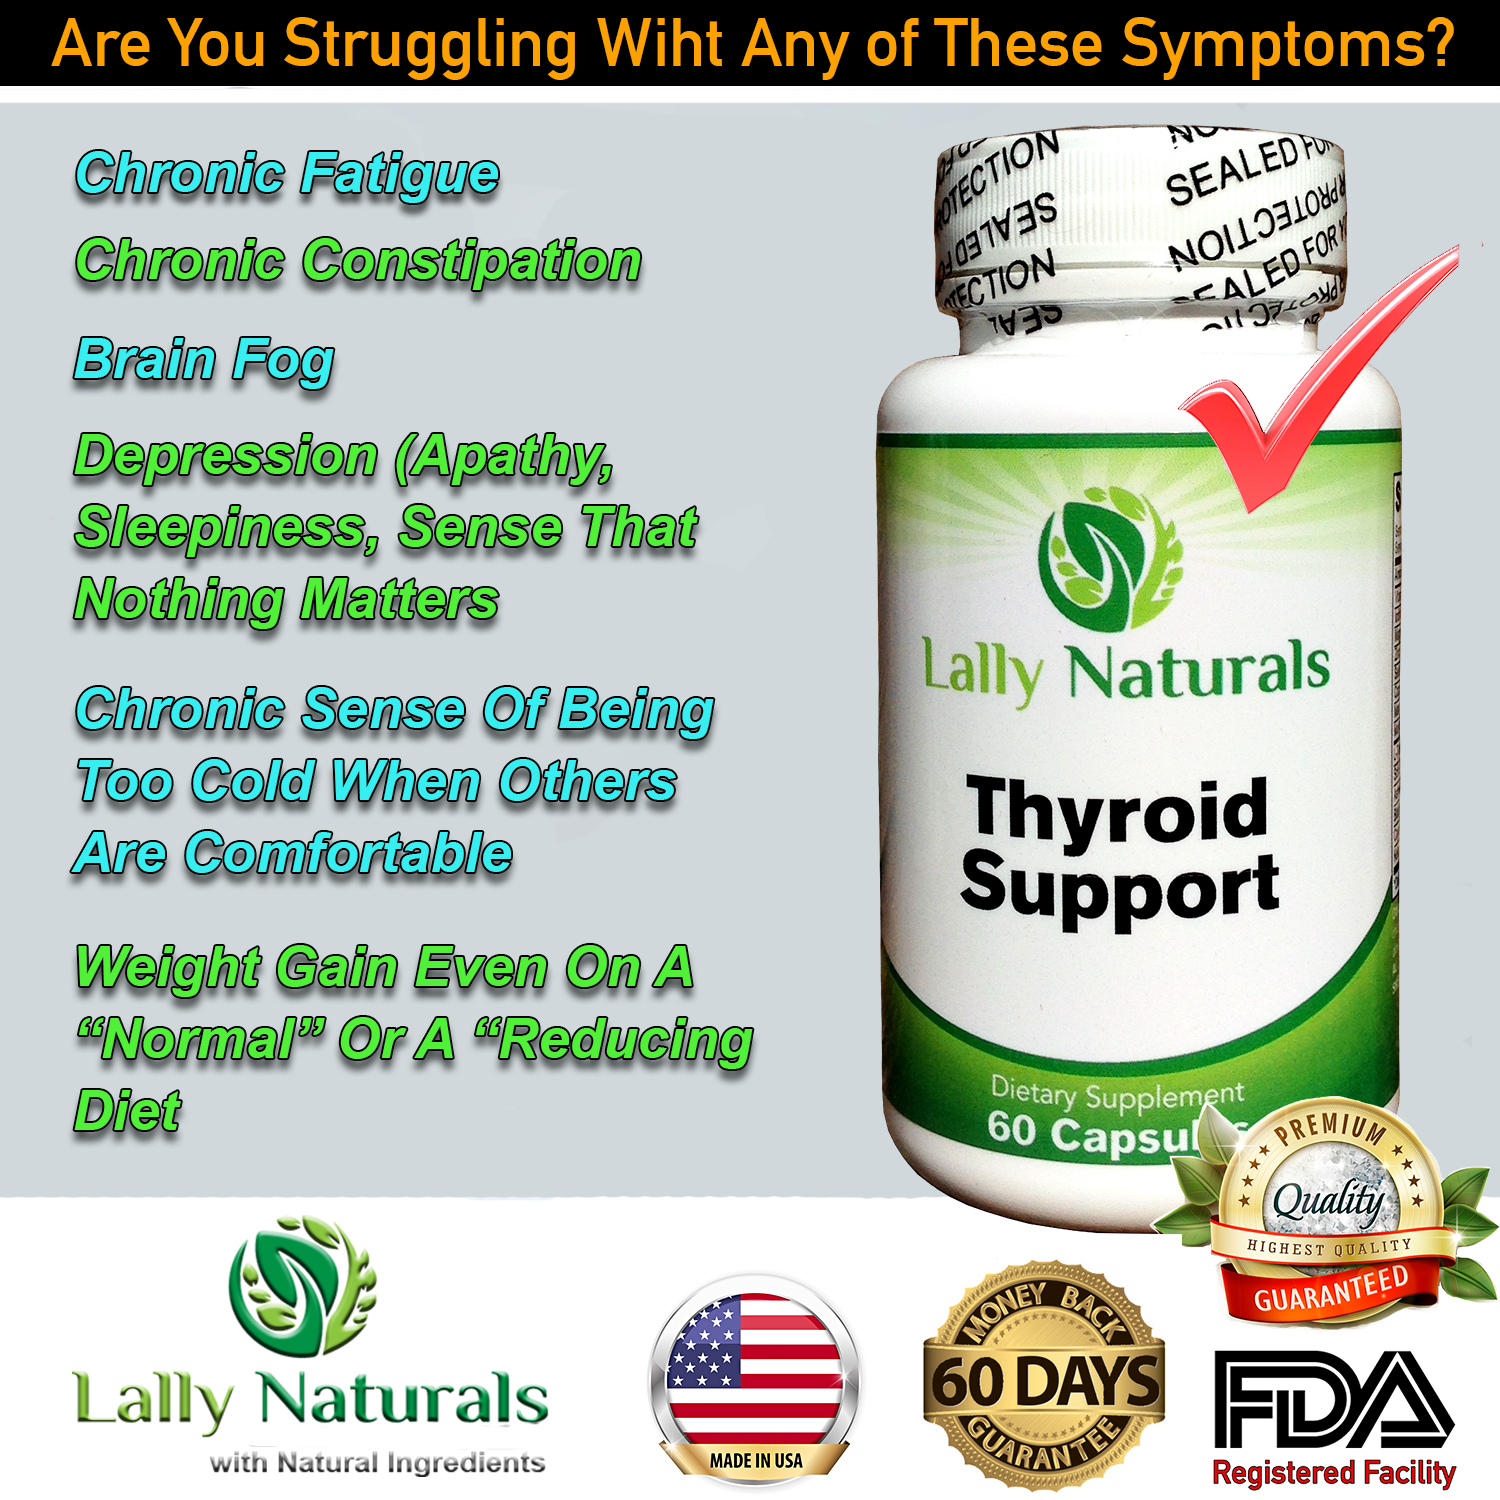 Thyroid Support - Lally Naturals